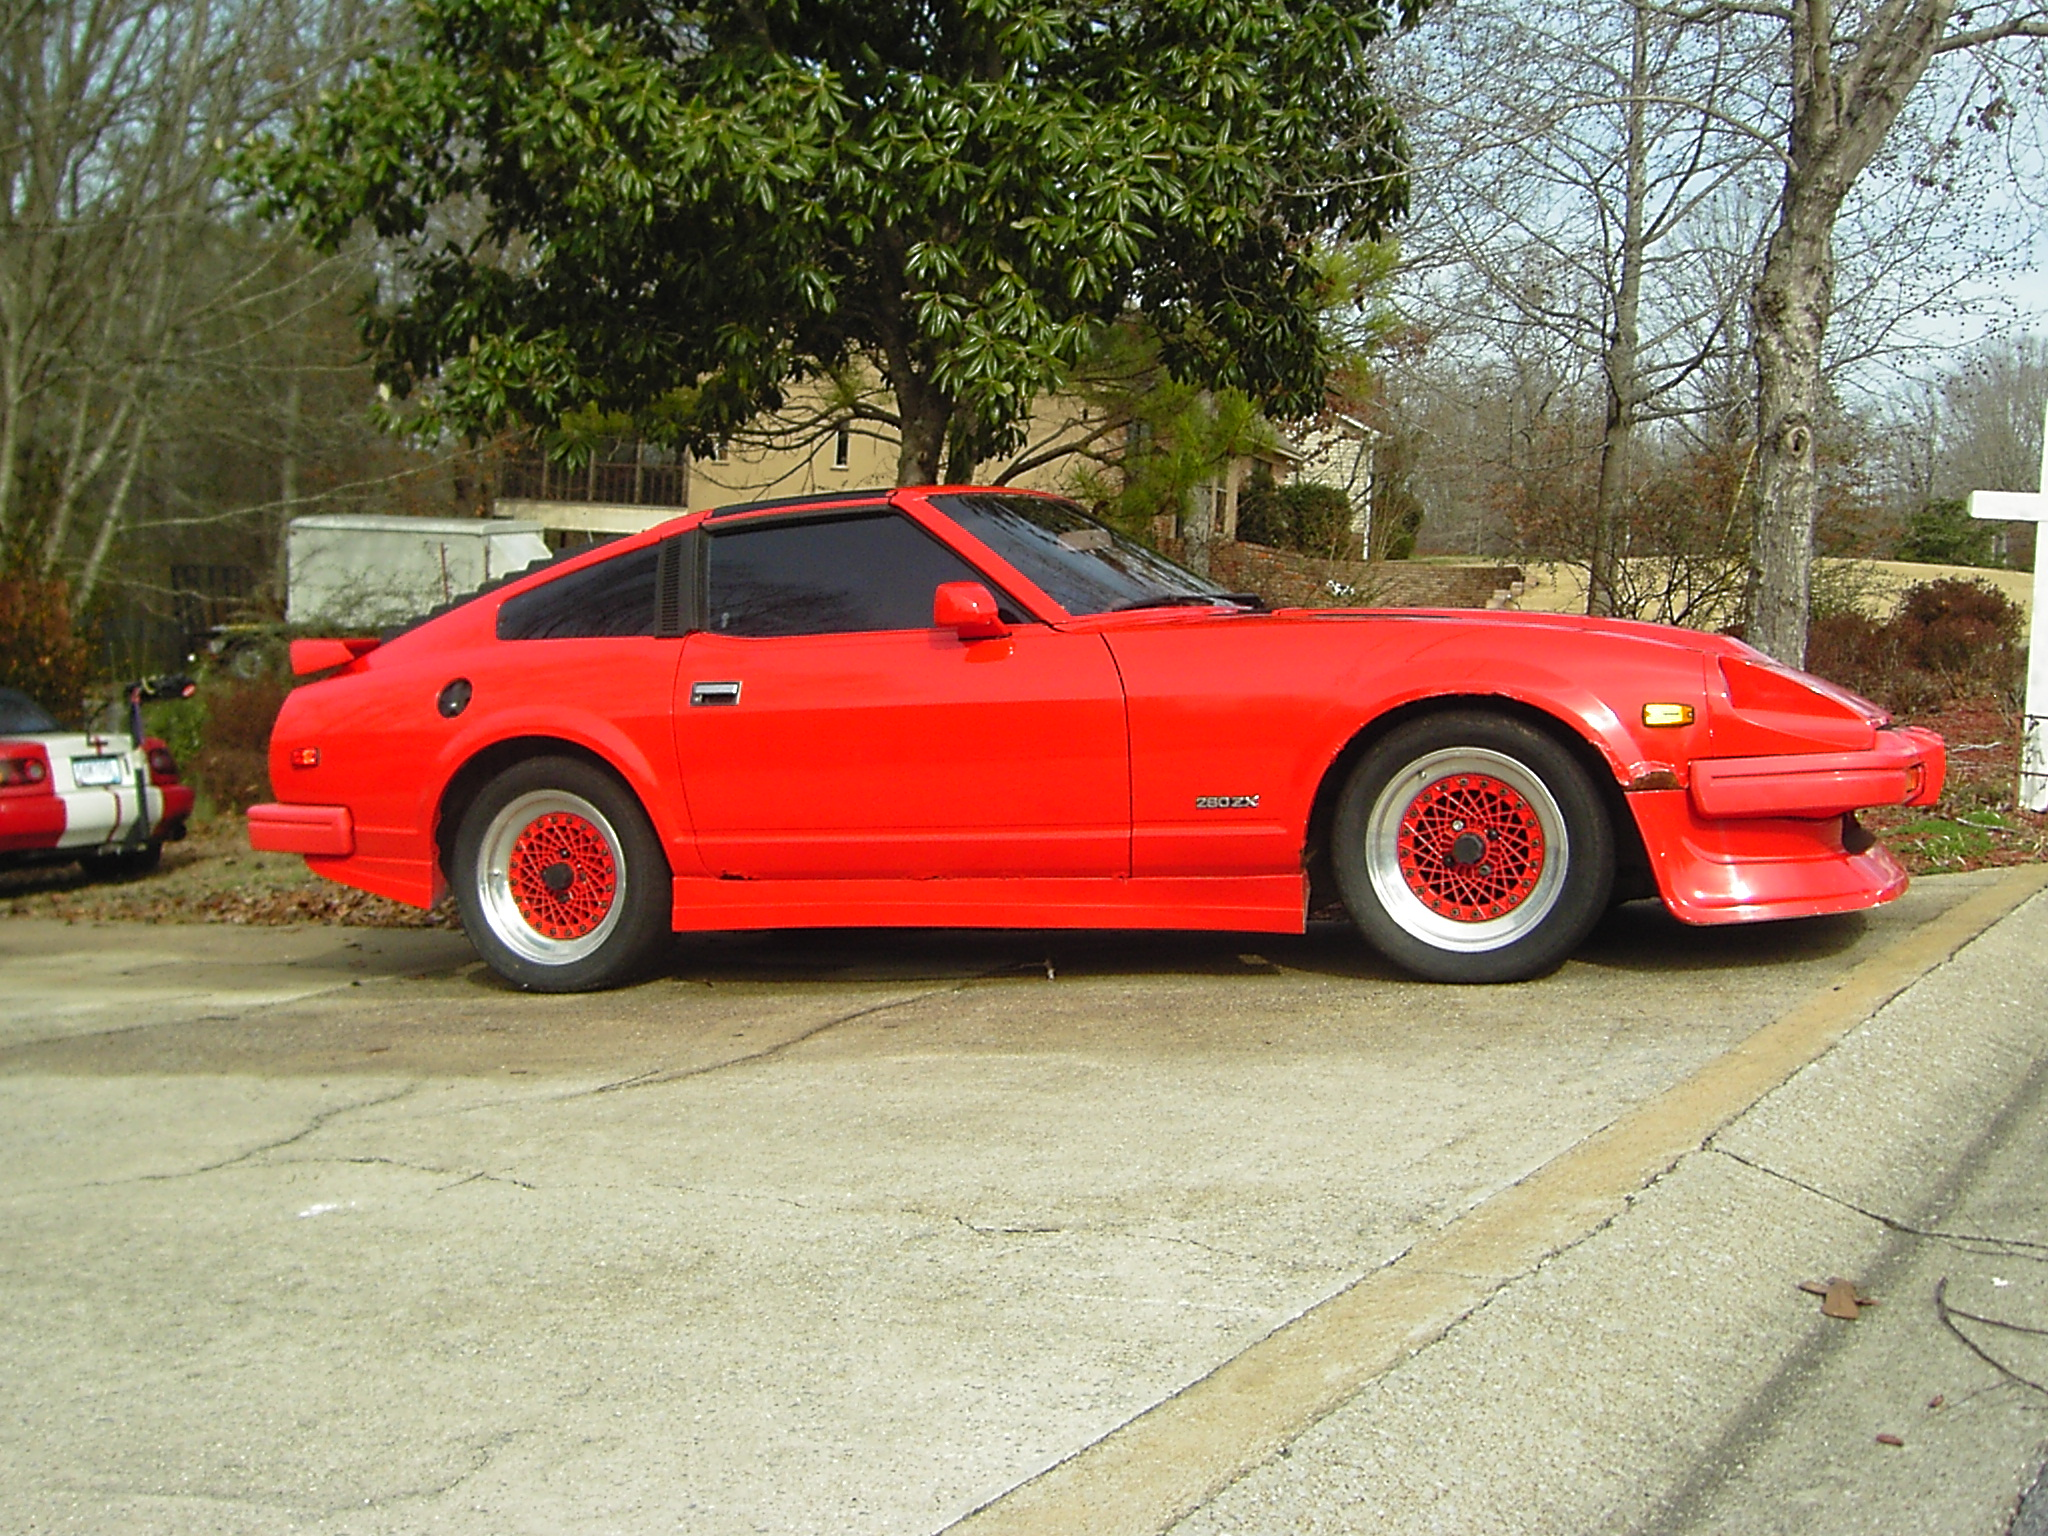 Forums / Classifieds / FOR SALE: 1981 Datsun 280ZX T-Top ...